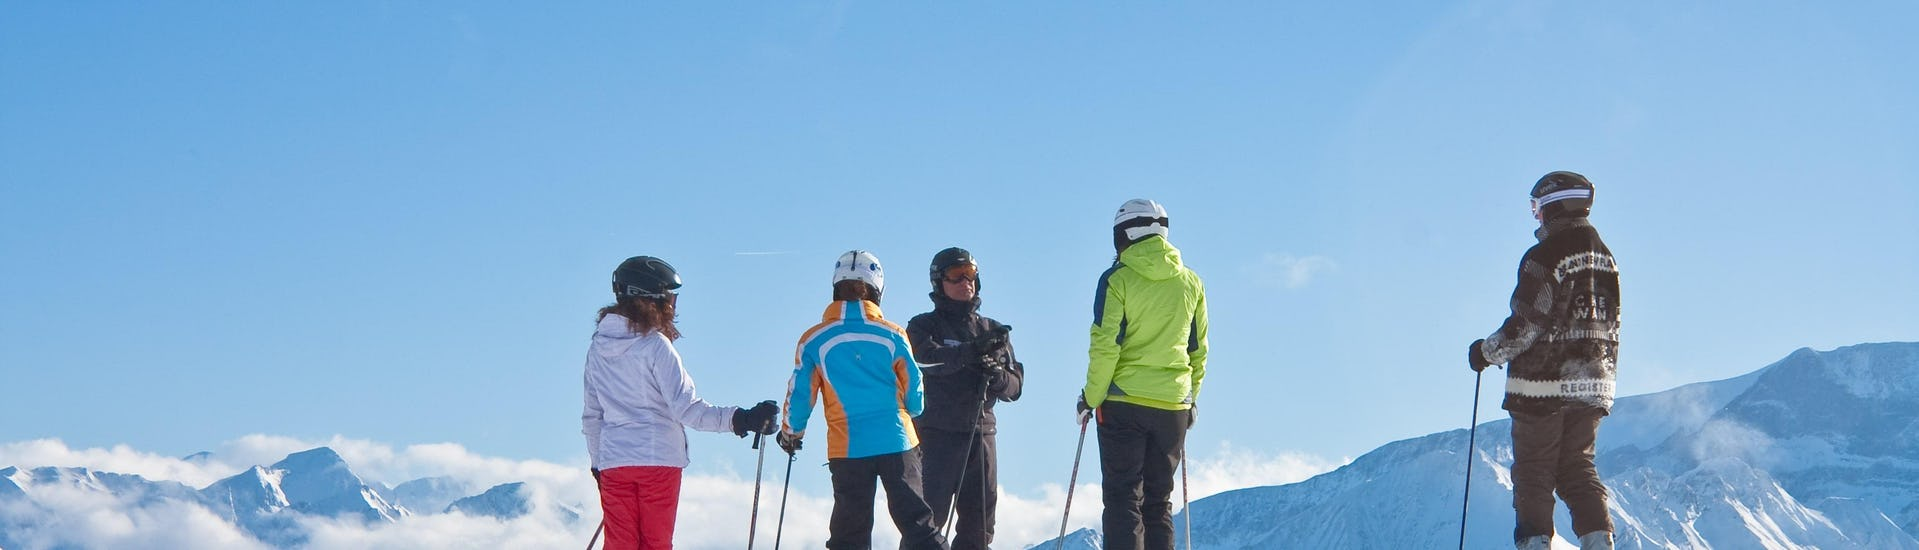 Ski Lessons for Adults - New Year Week - First Timer